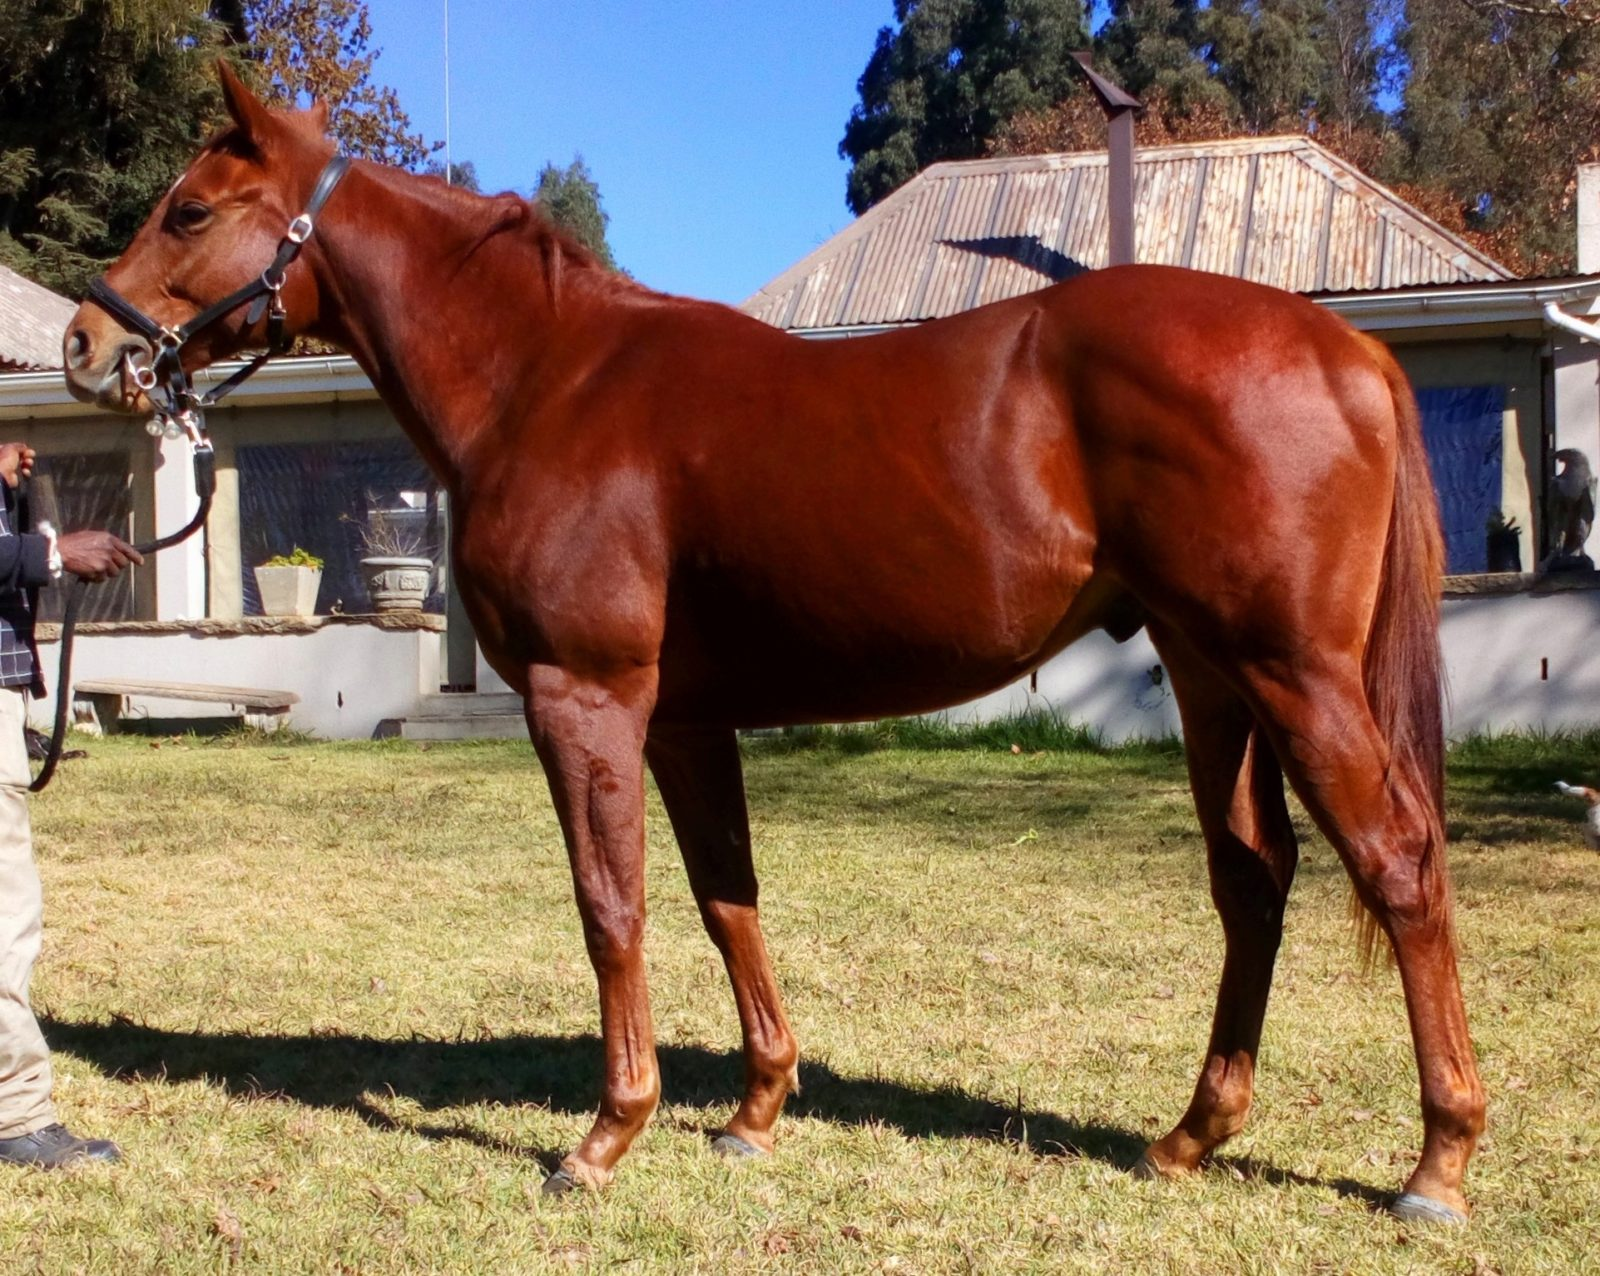 Muster Up. Sired by Silvano, out of the dam Mocha Java. Bred by Maine Chance Farms. Horse owned by Hollywood Syndicate.